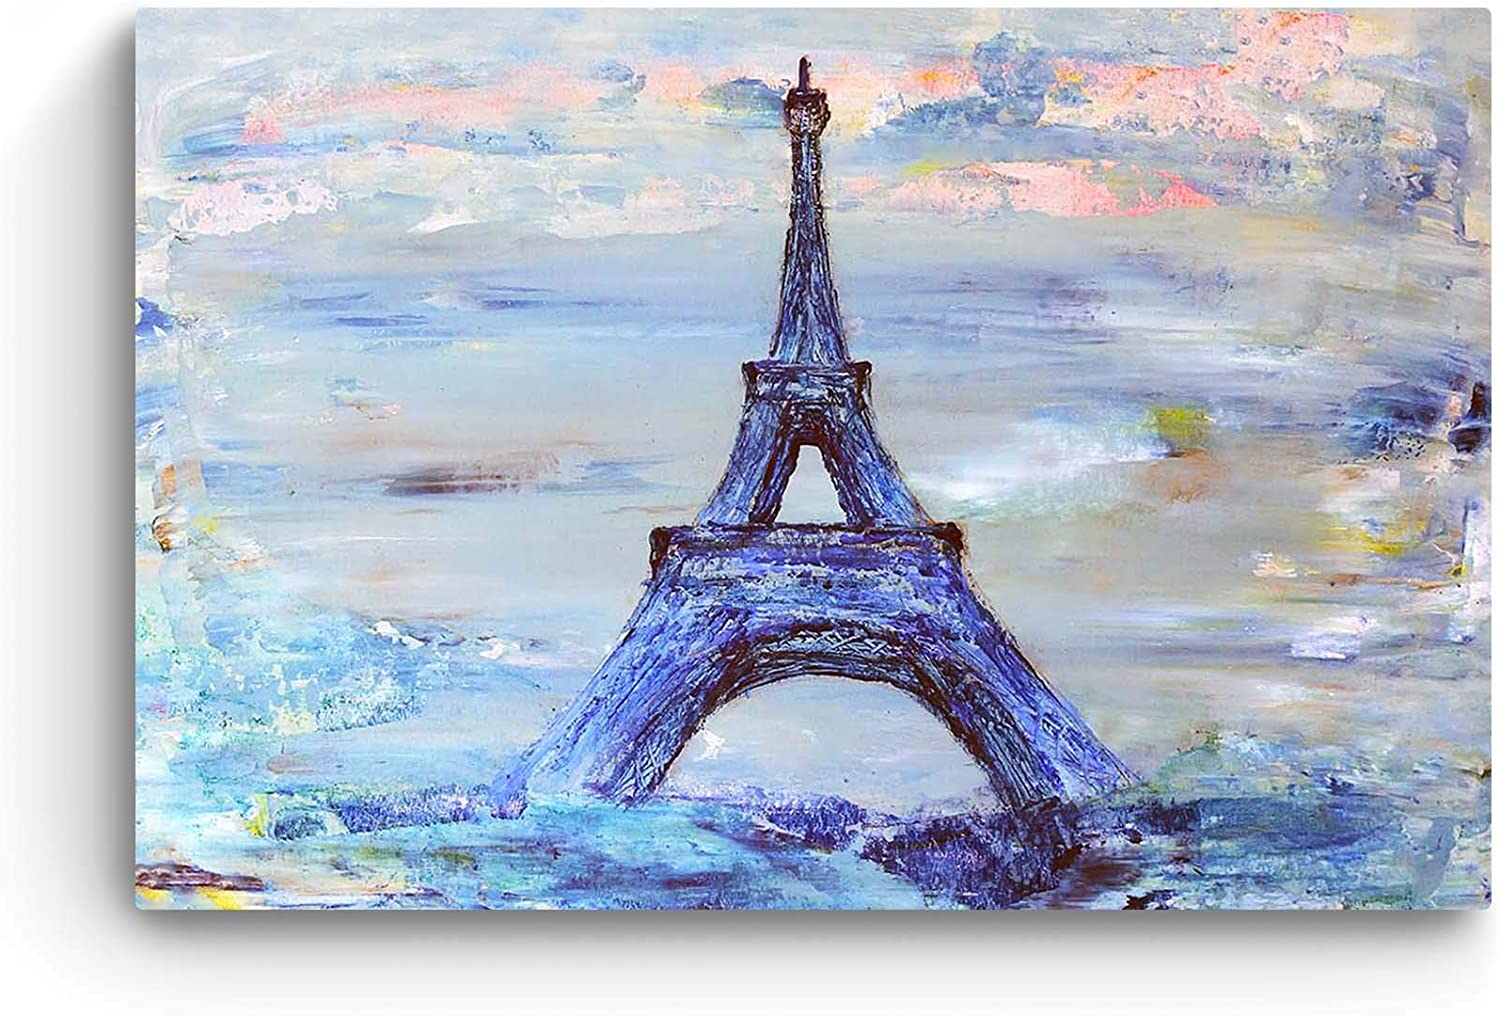 Extra Large CANVAS WALL ART OIL PAINTING HAND PAINTED PARIS EIFFEL TOWERSTREET